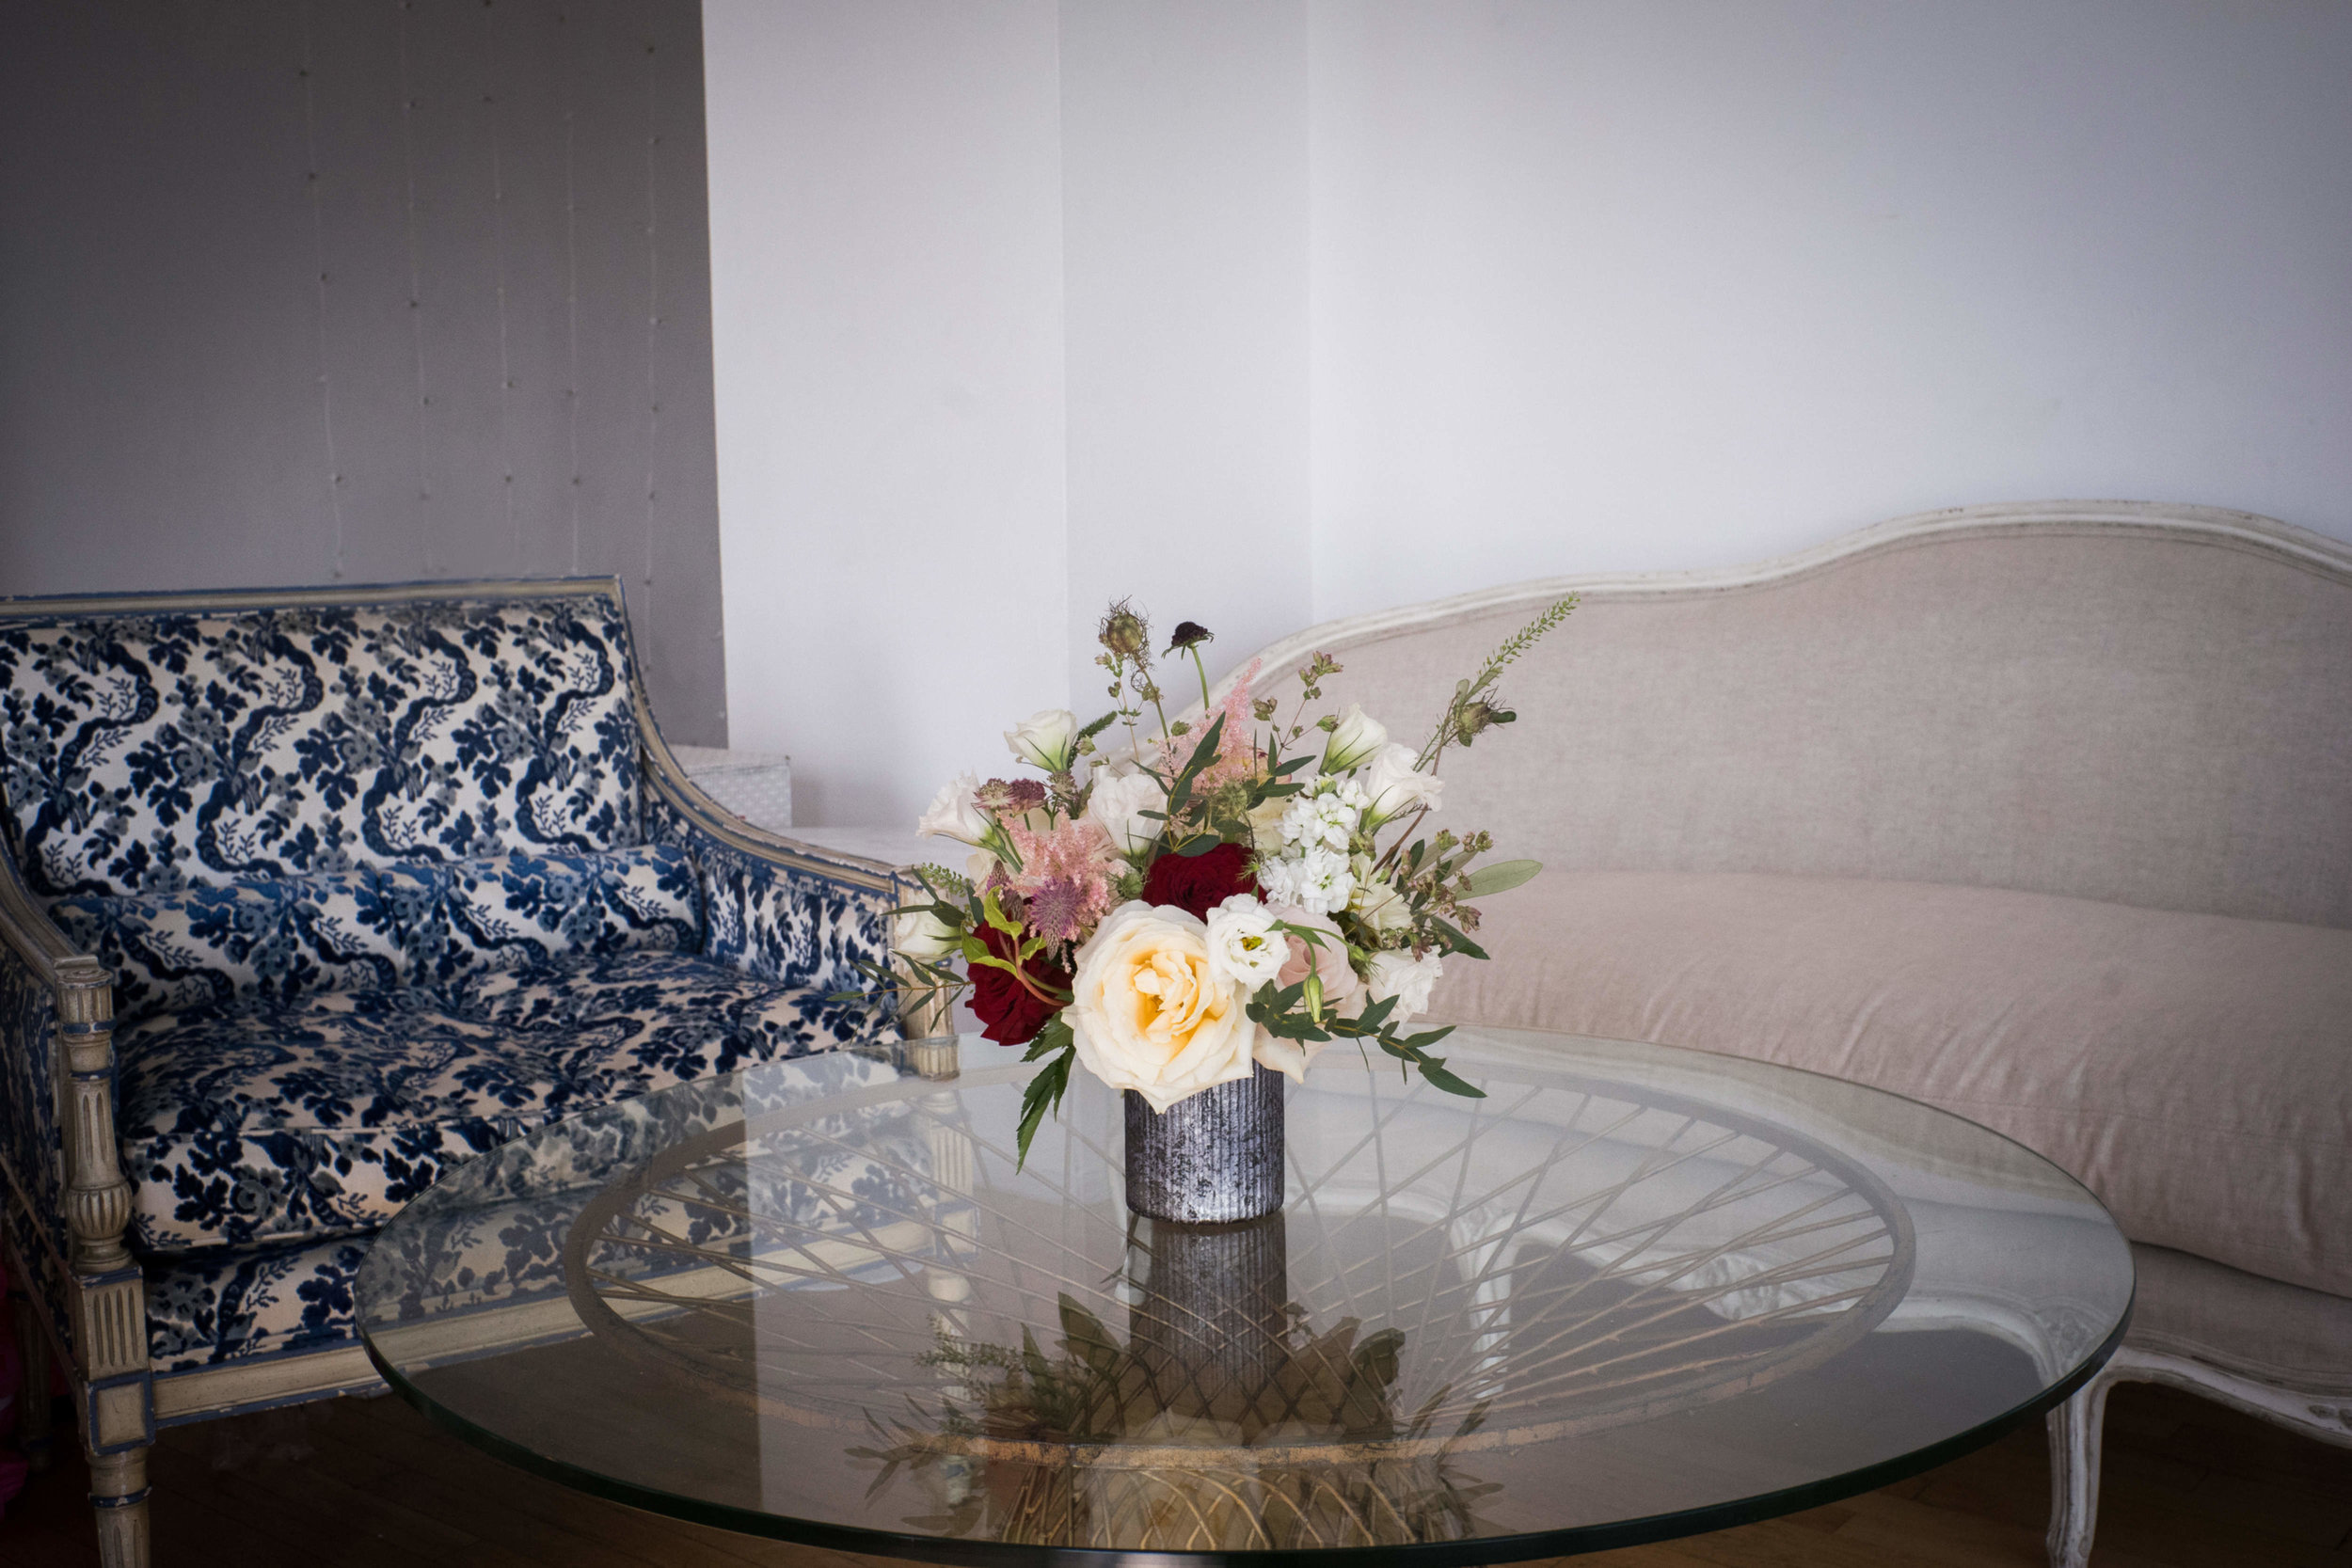 couches-flowers.jpg